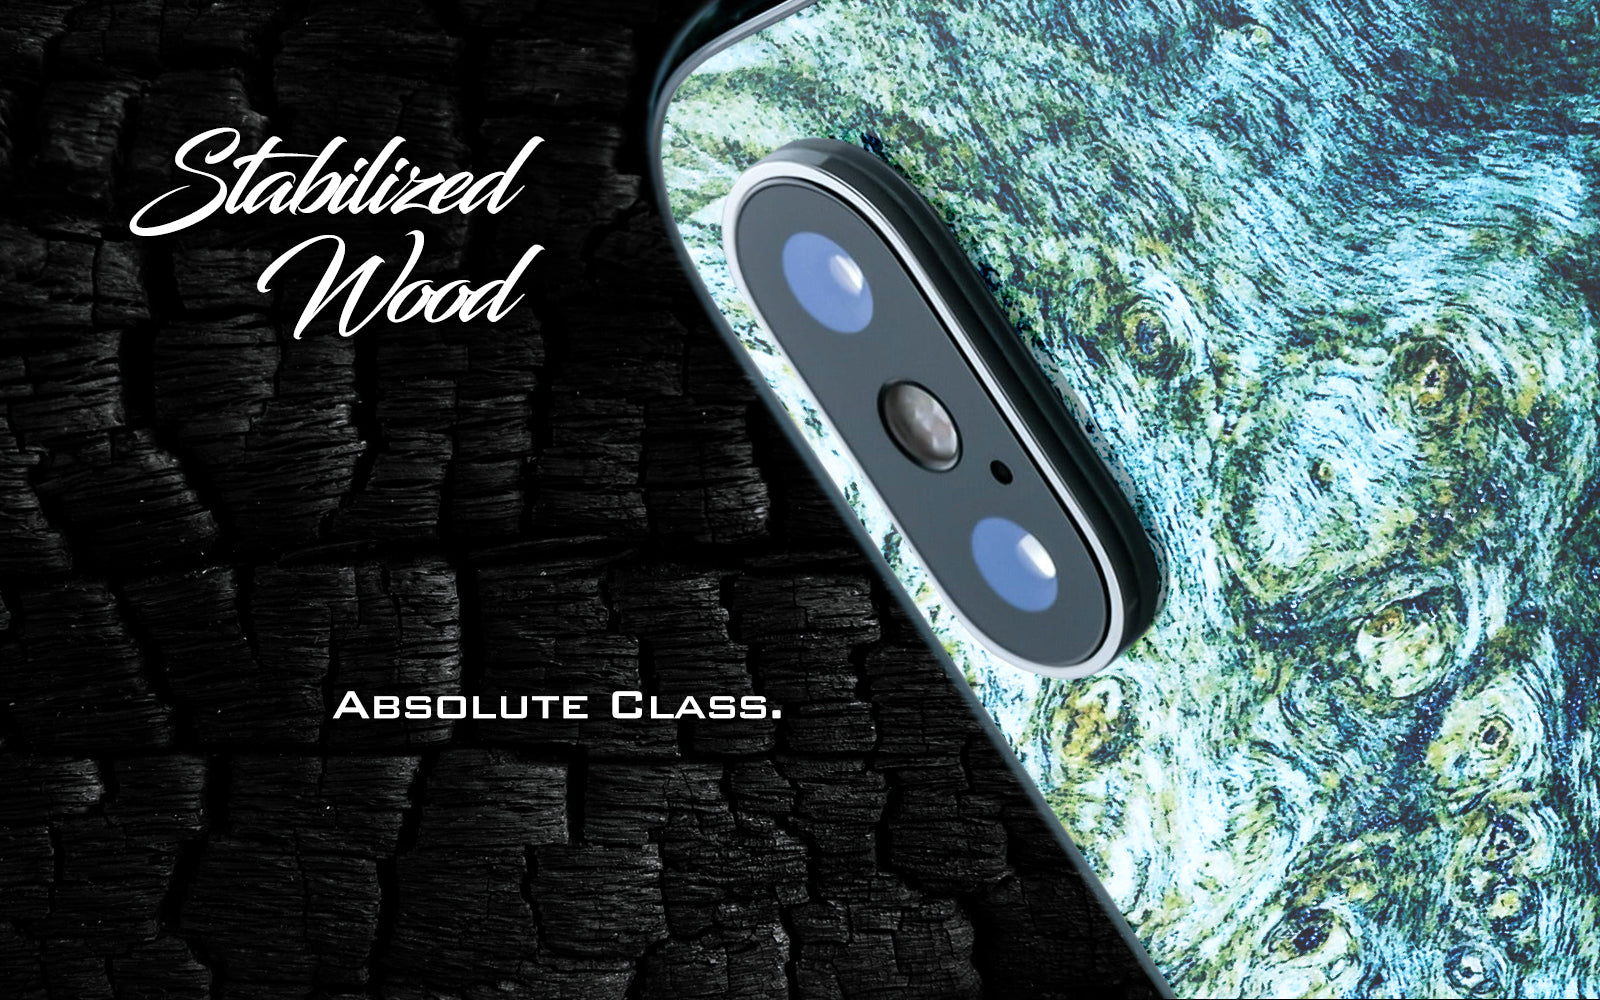 Stabilized Wood skins available for phone cases. iPhone 6 cases, and iPhone 7 phone cases. Exclusively at jwskinz.com